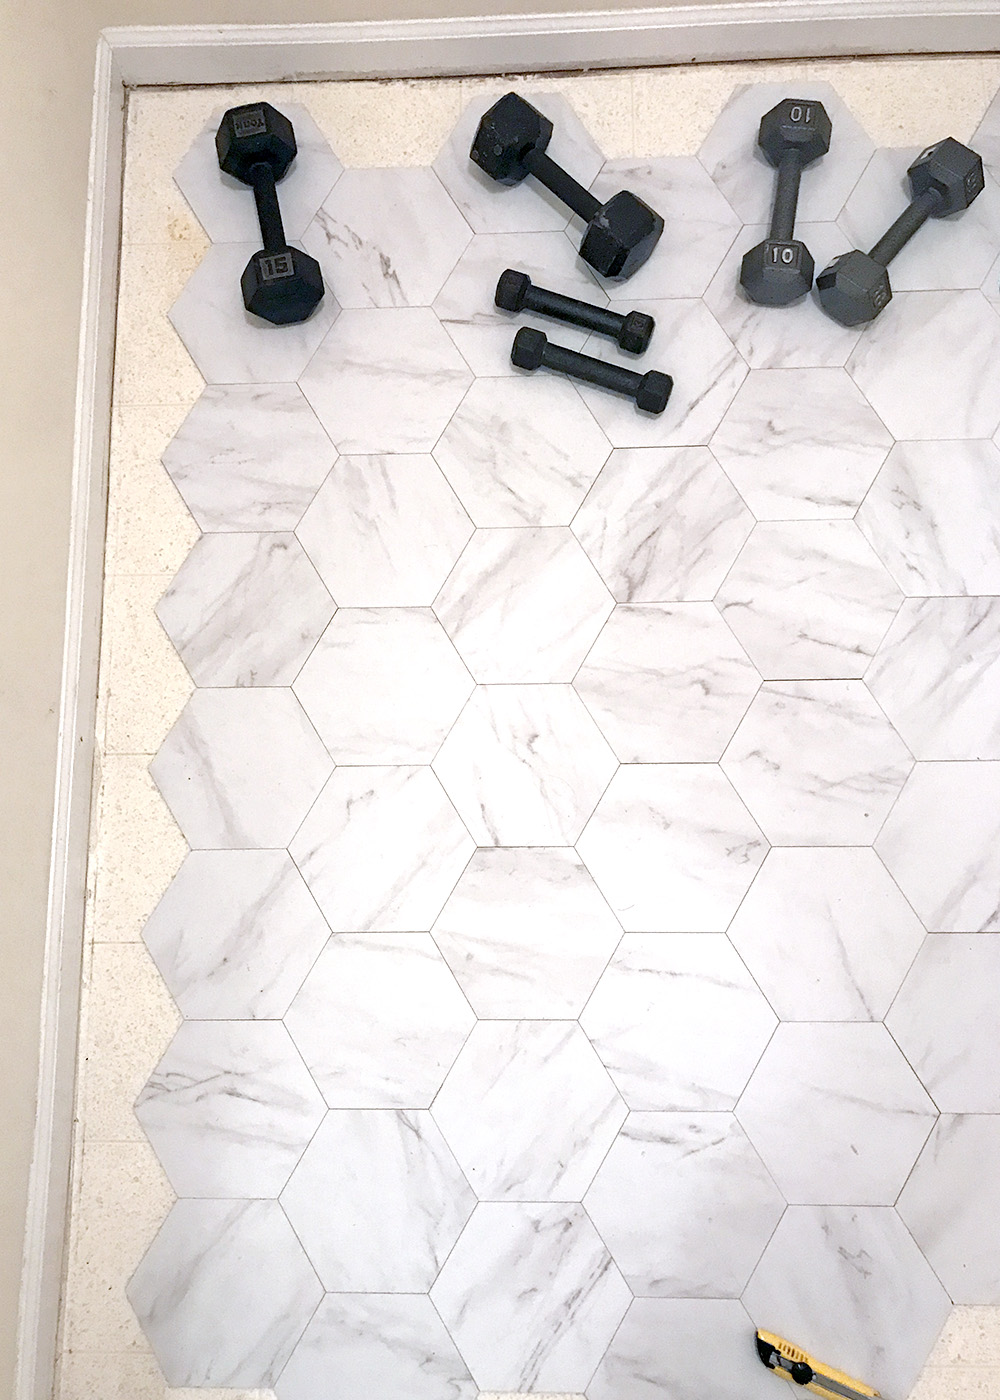 Step 4: Cover the Room With Tiles